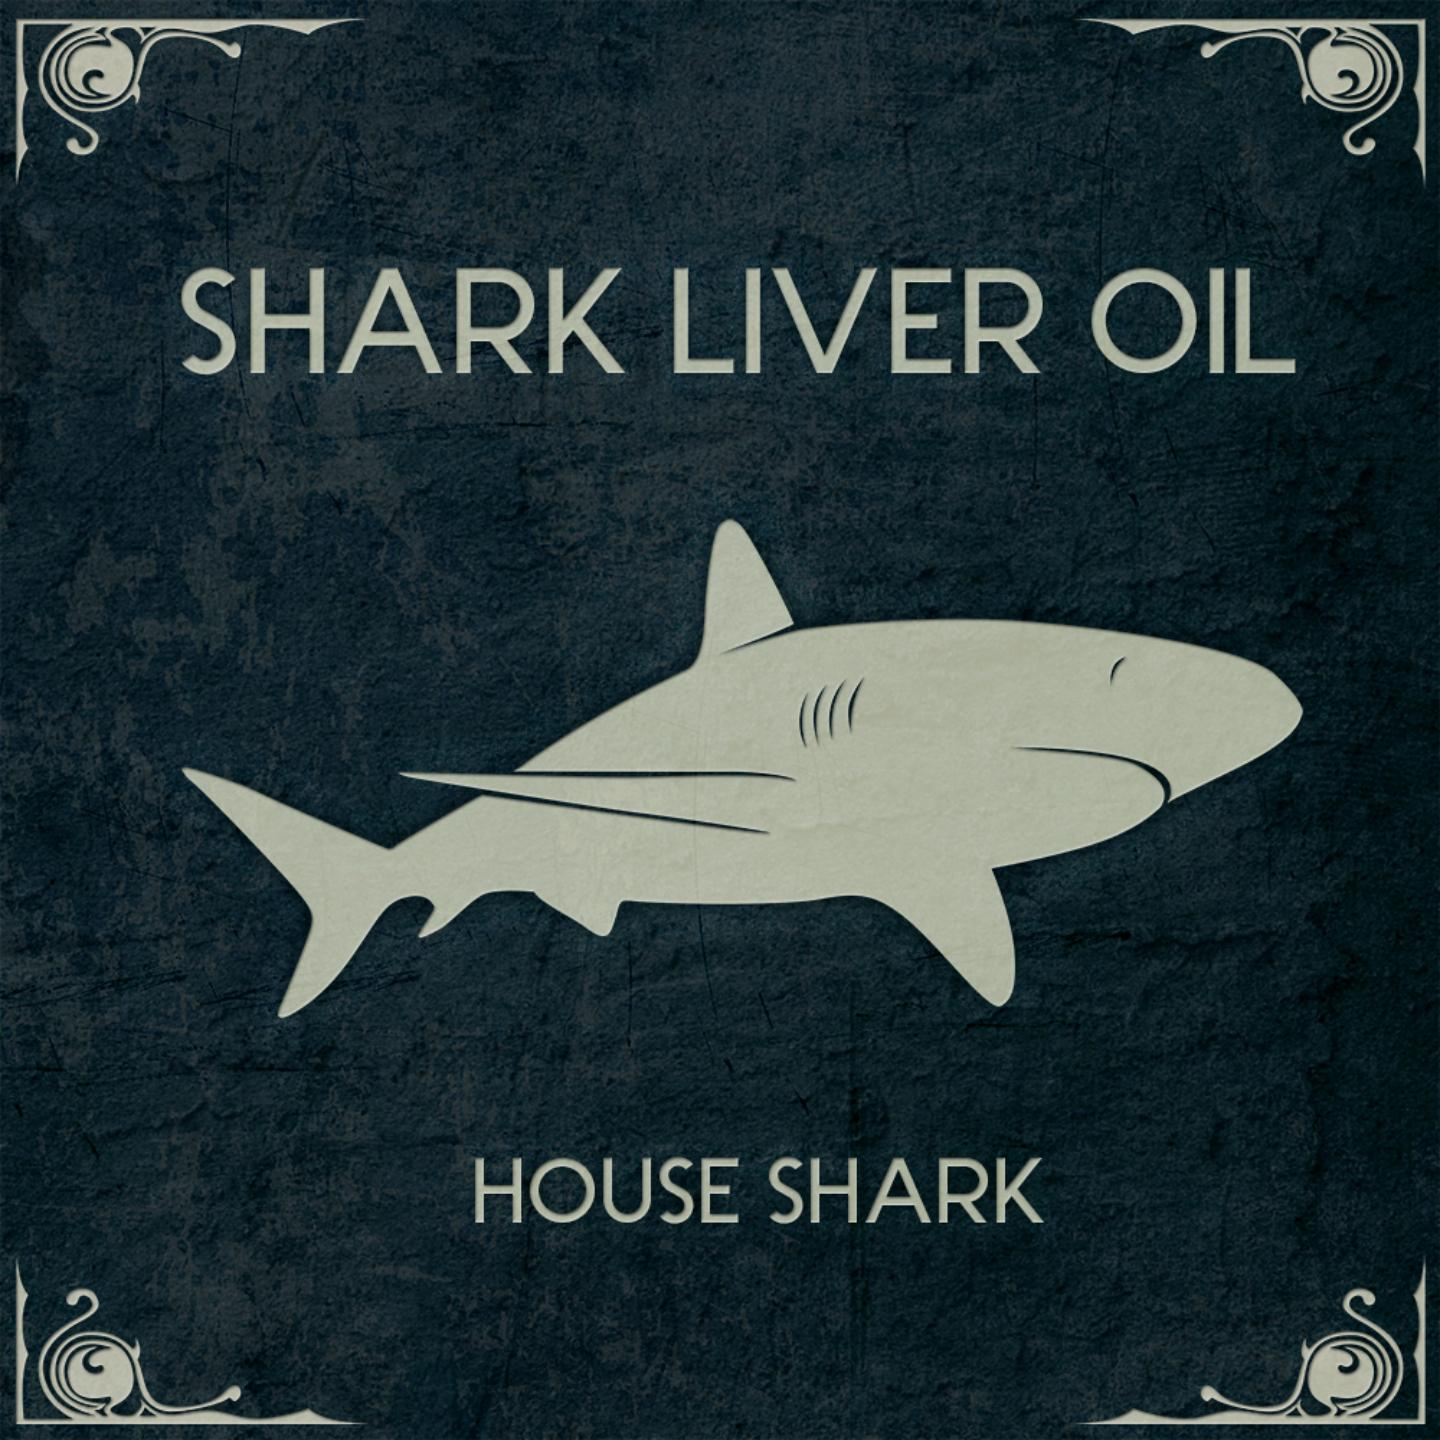 Game Of Thrones with Shark Liver Oil